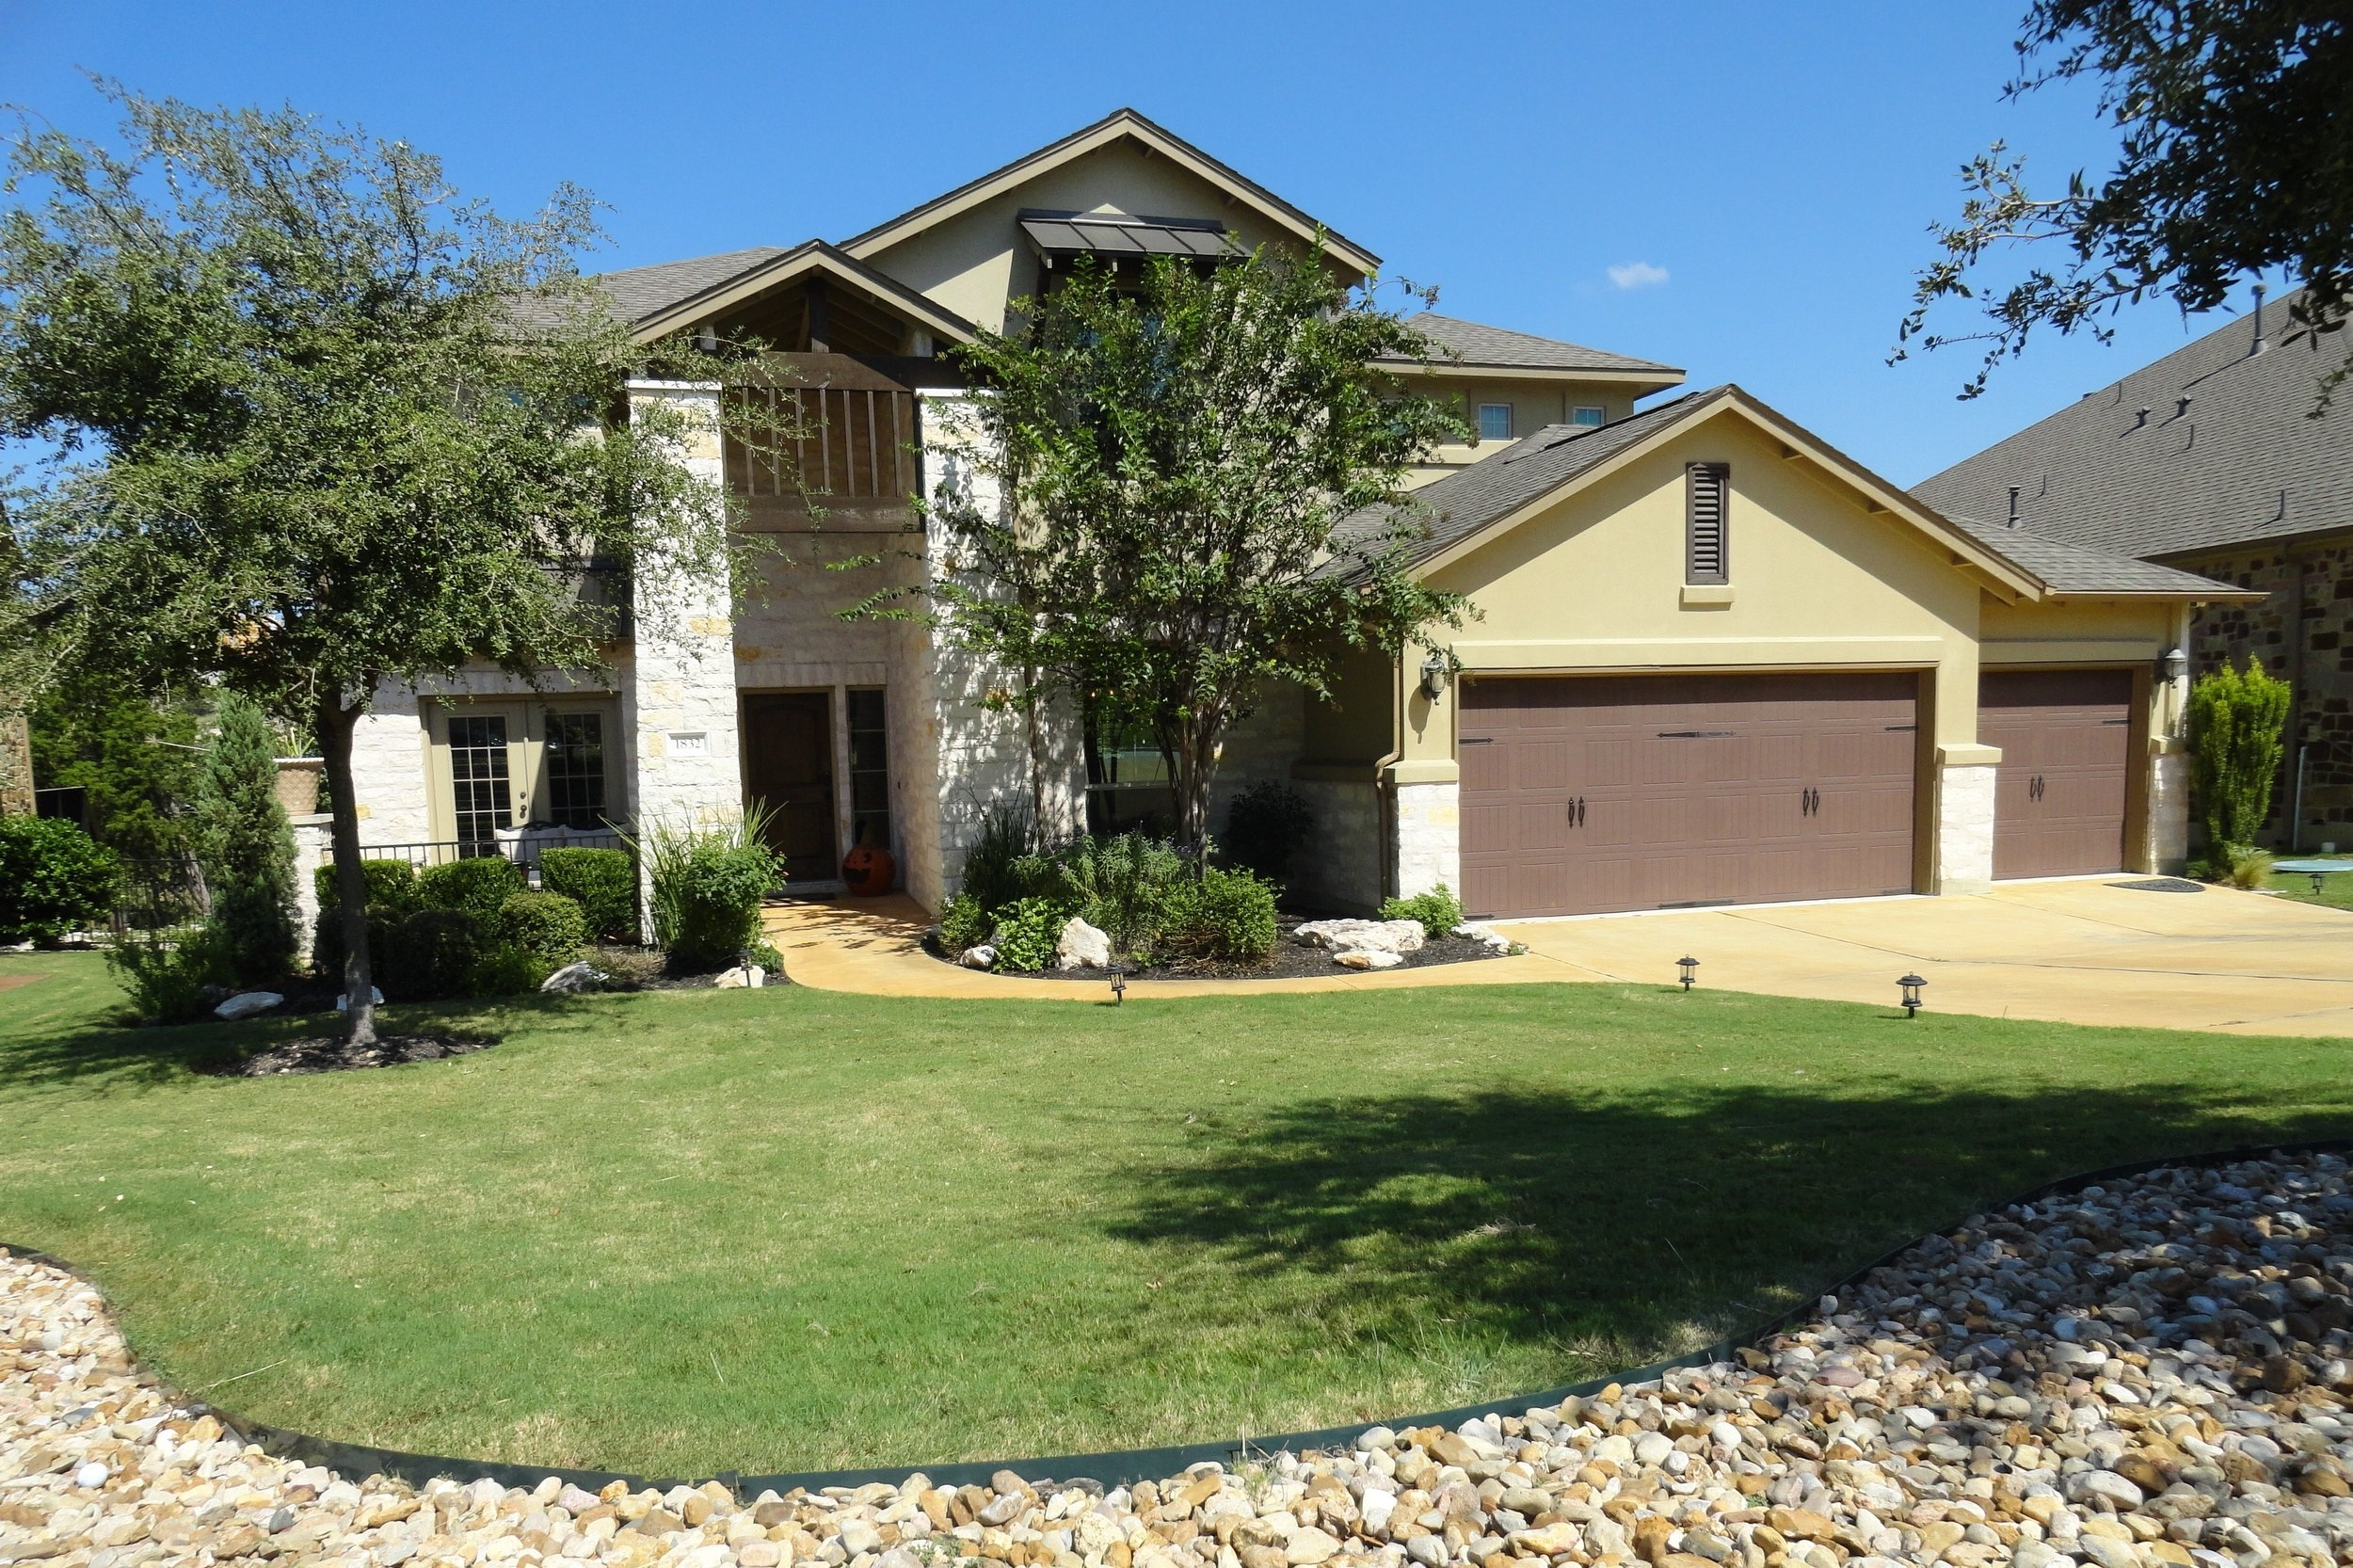 COMING SOON! 1832 Harvest Dance Dr. - Crystal Falls in Leander  Stunning home with just about every available builder option. Lovely view of the Crystal Falls Golf Course and hill country. Flat, useable back yard. Upper and lower covered porches. Built-in grill, sink, refrigerator on lower patio. Game room. Media room. Study. Wood floors. Professional-level gas cooktop. 3746 sqft, built in 2011.   Seller is putting final touches on the home in preparation for showing. Should be ready for viewing by August 21. Will be listed at $560.000.